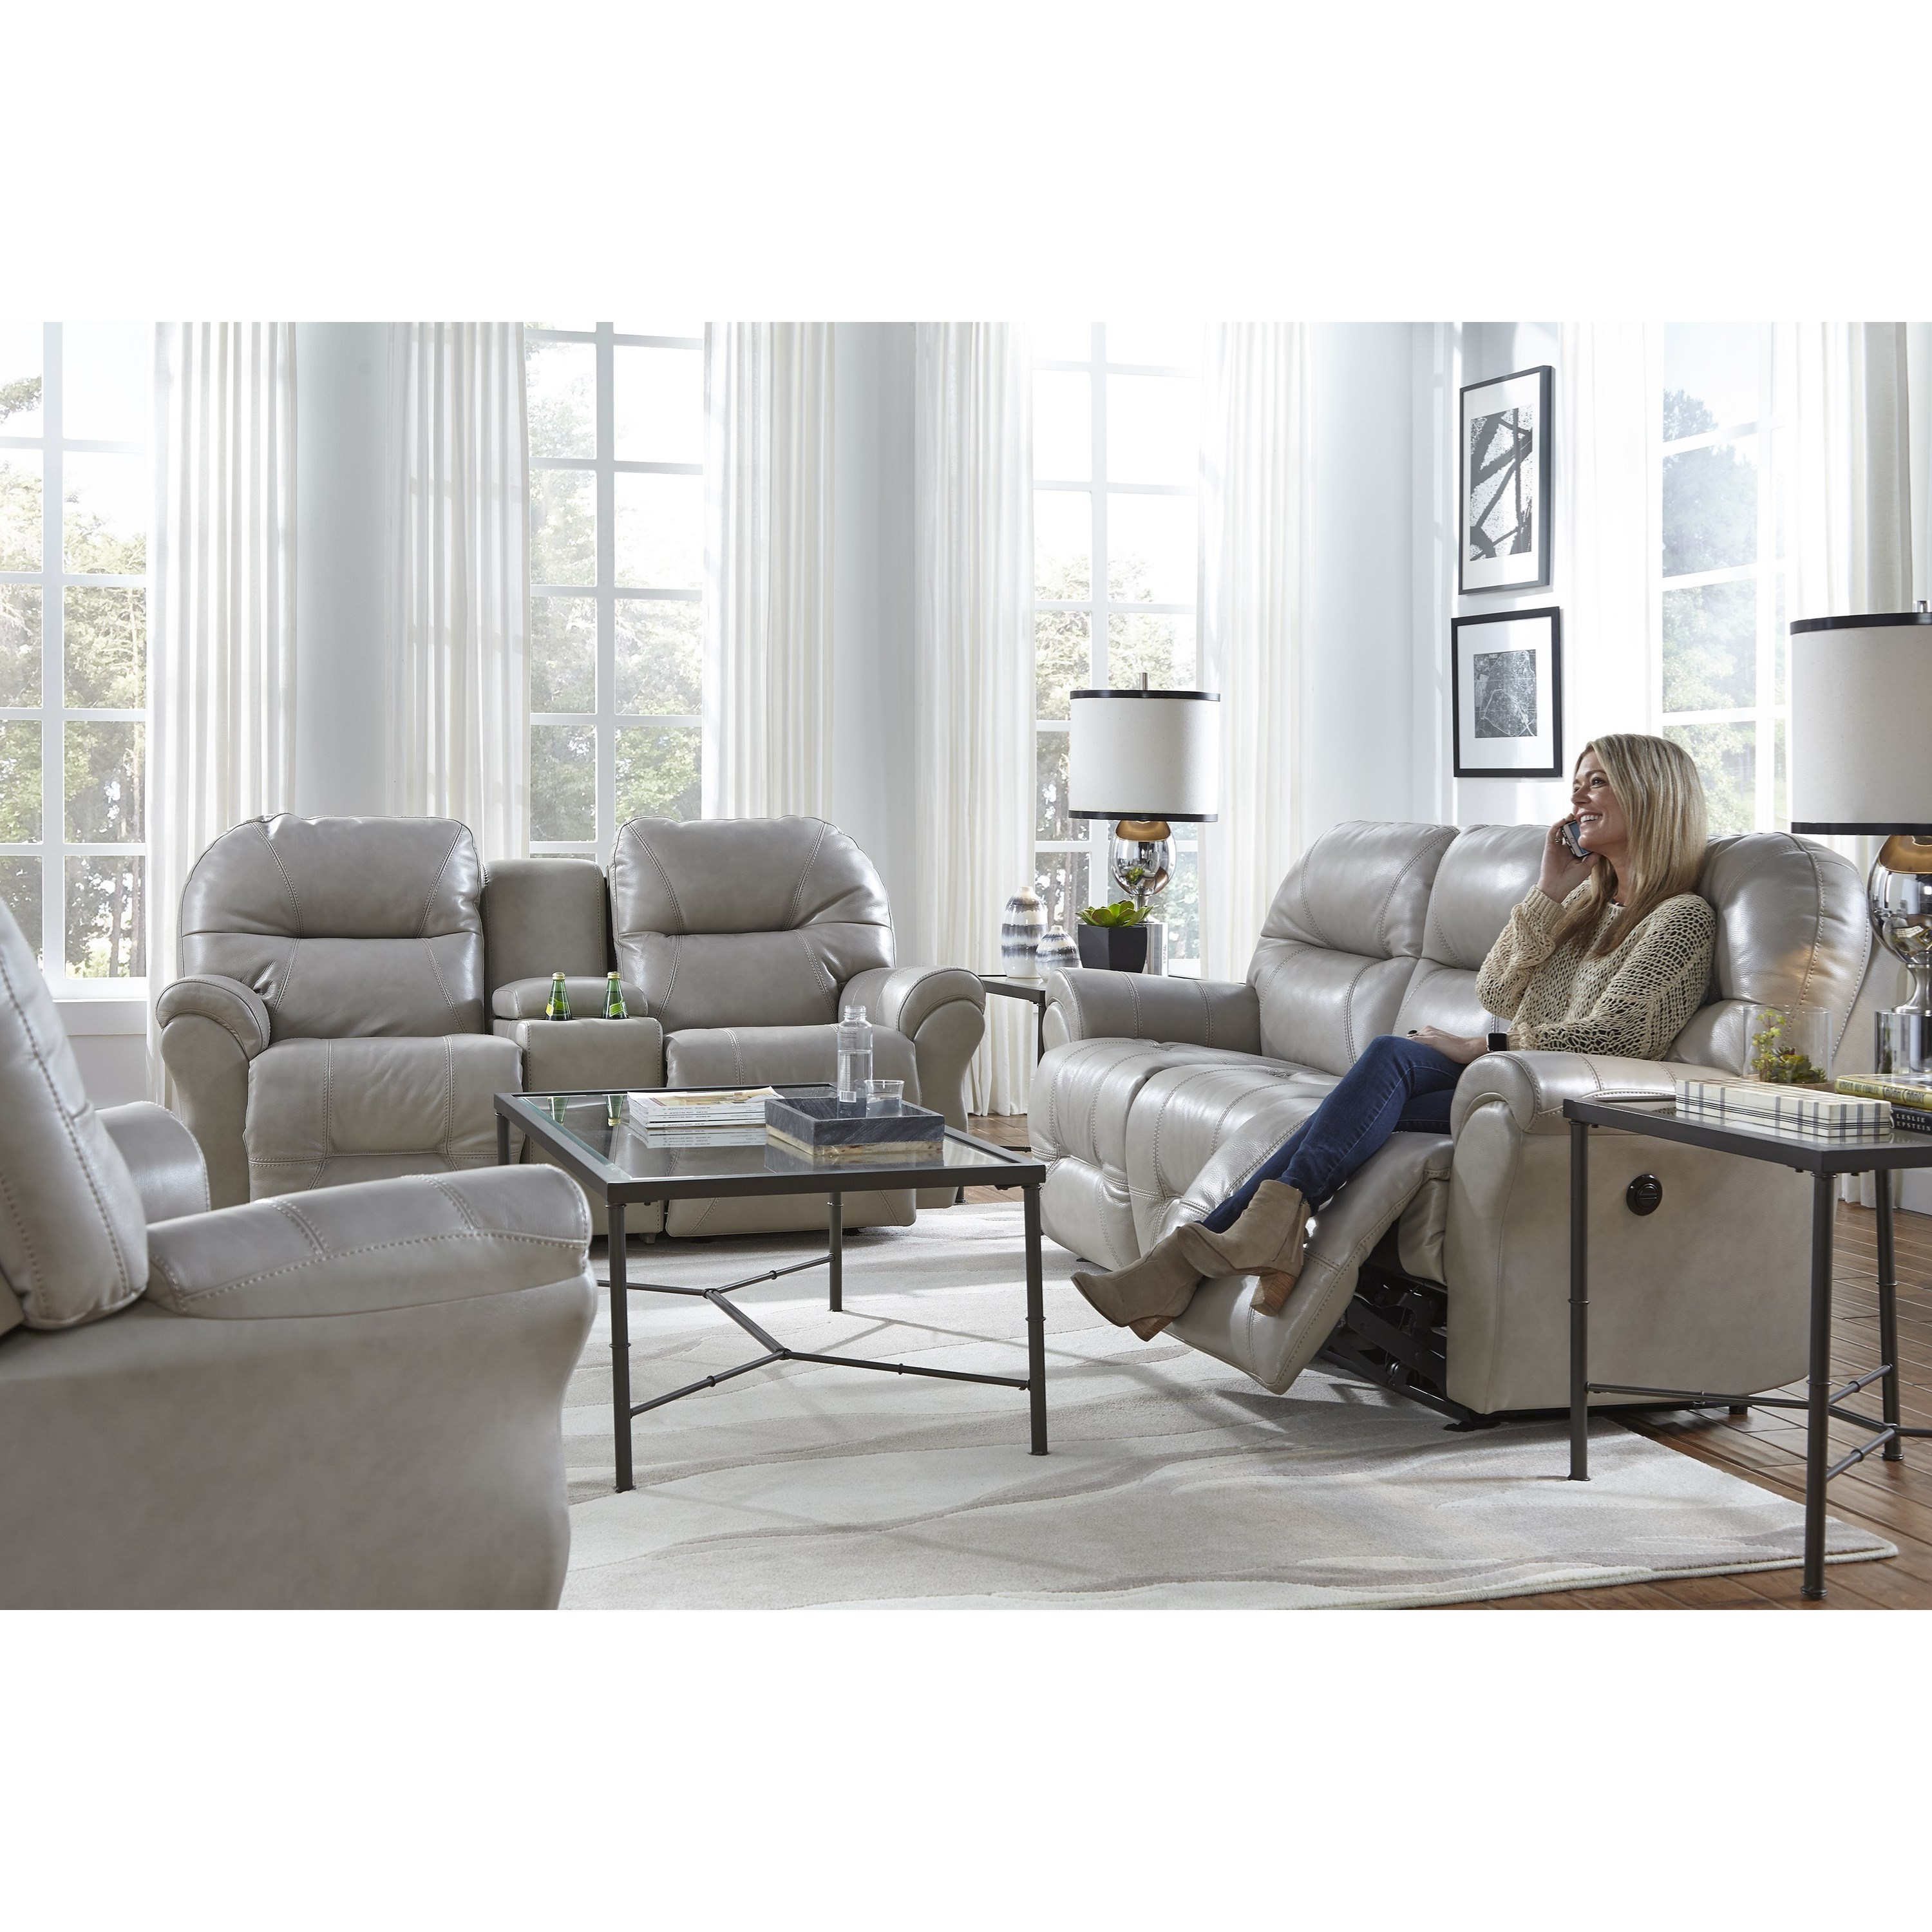 Bodie Reclining Living Room Group by Best Home Furnishings at Stoney Creek Furniture